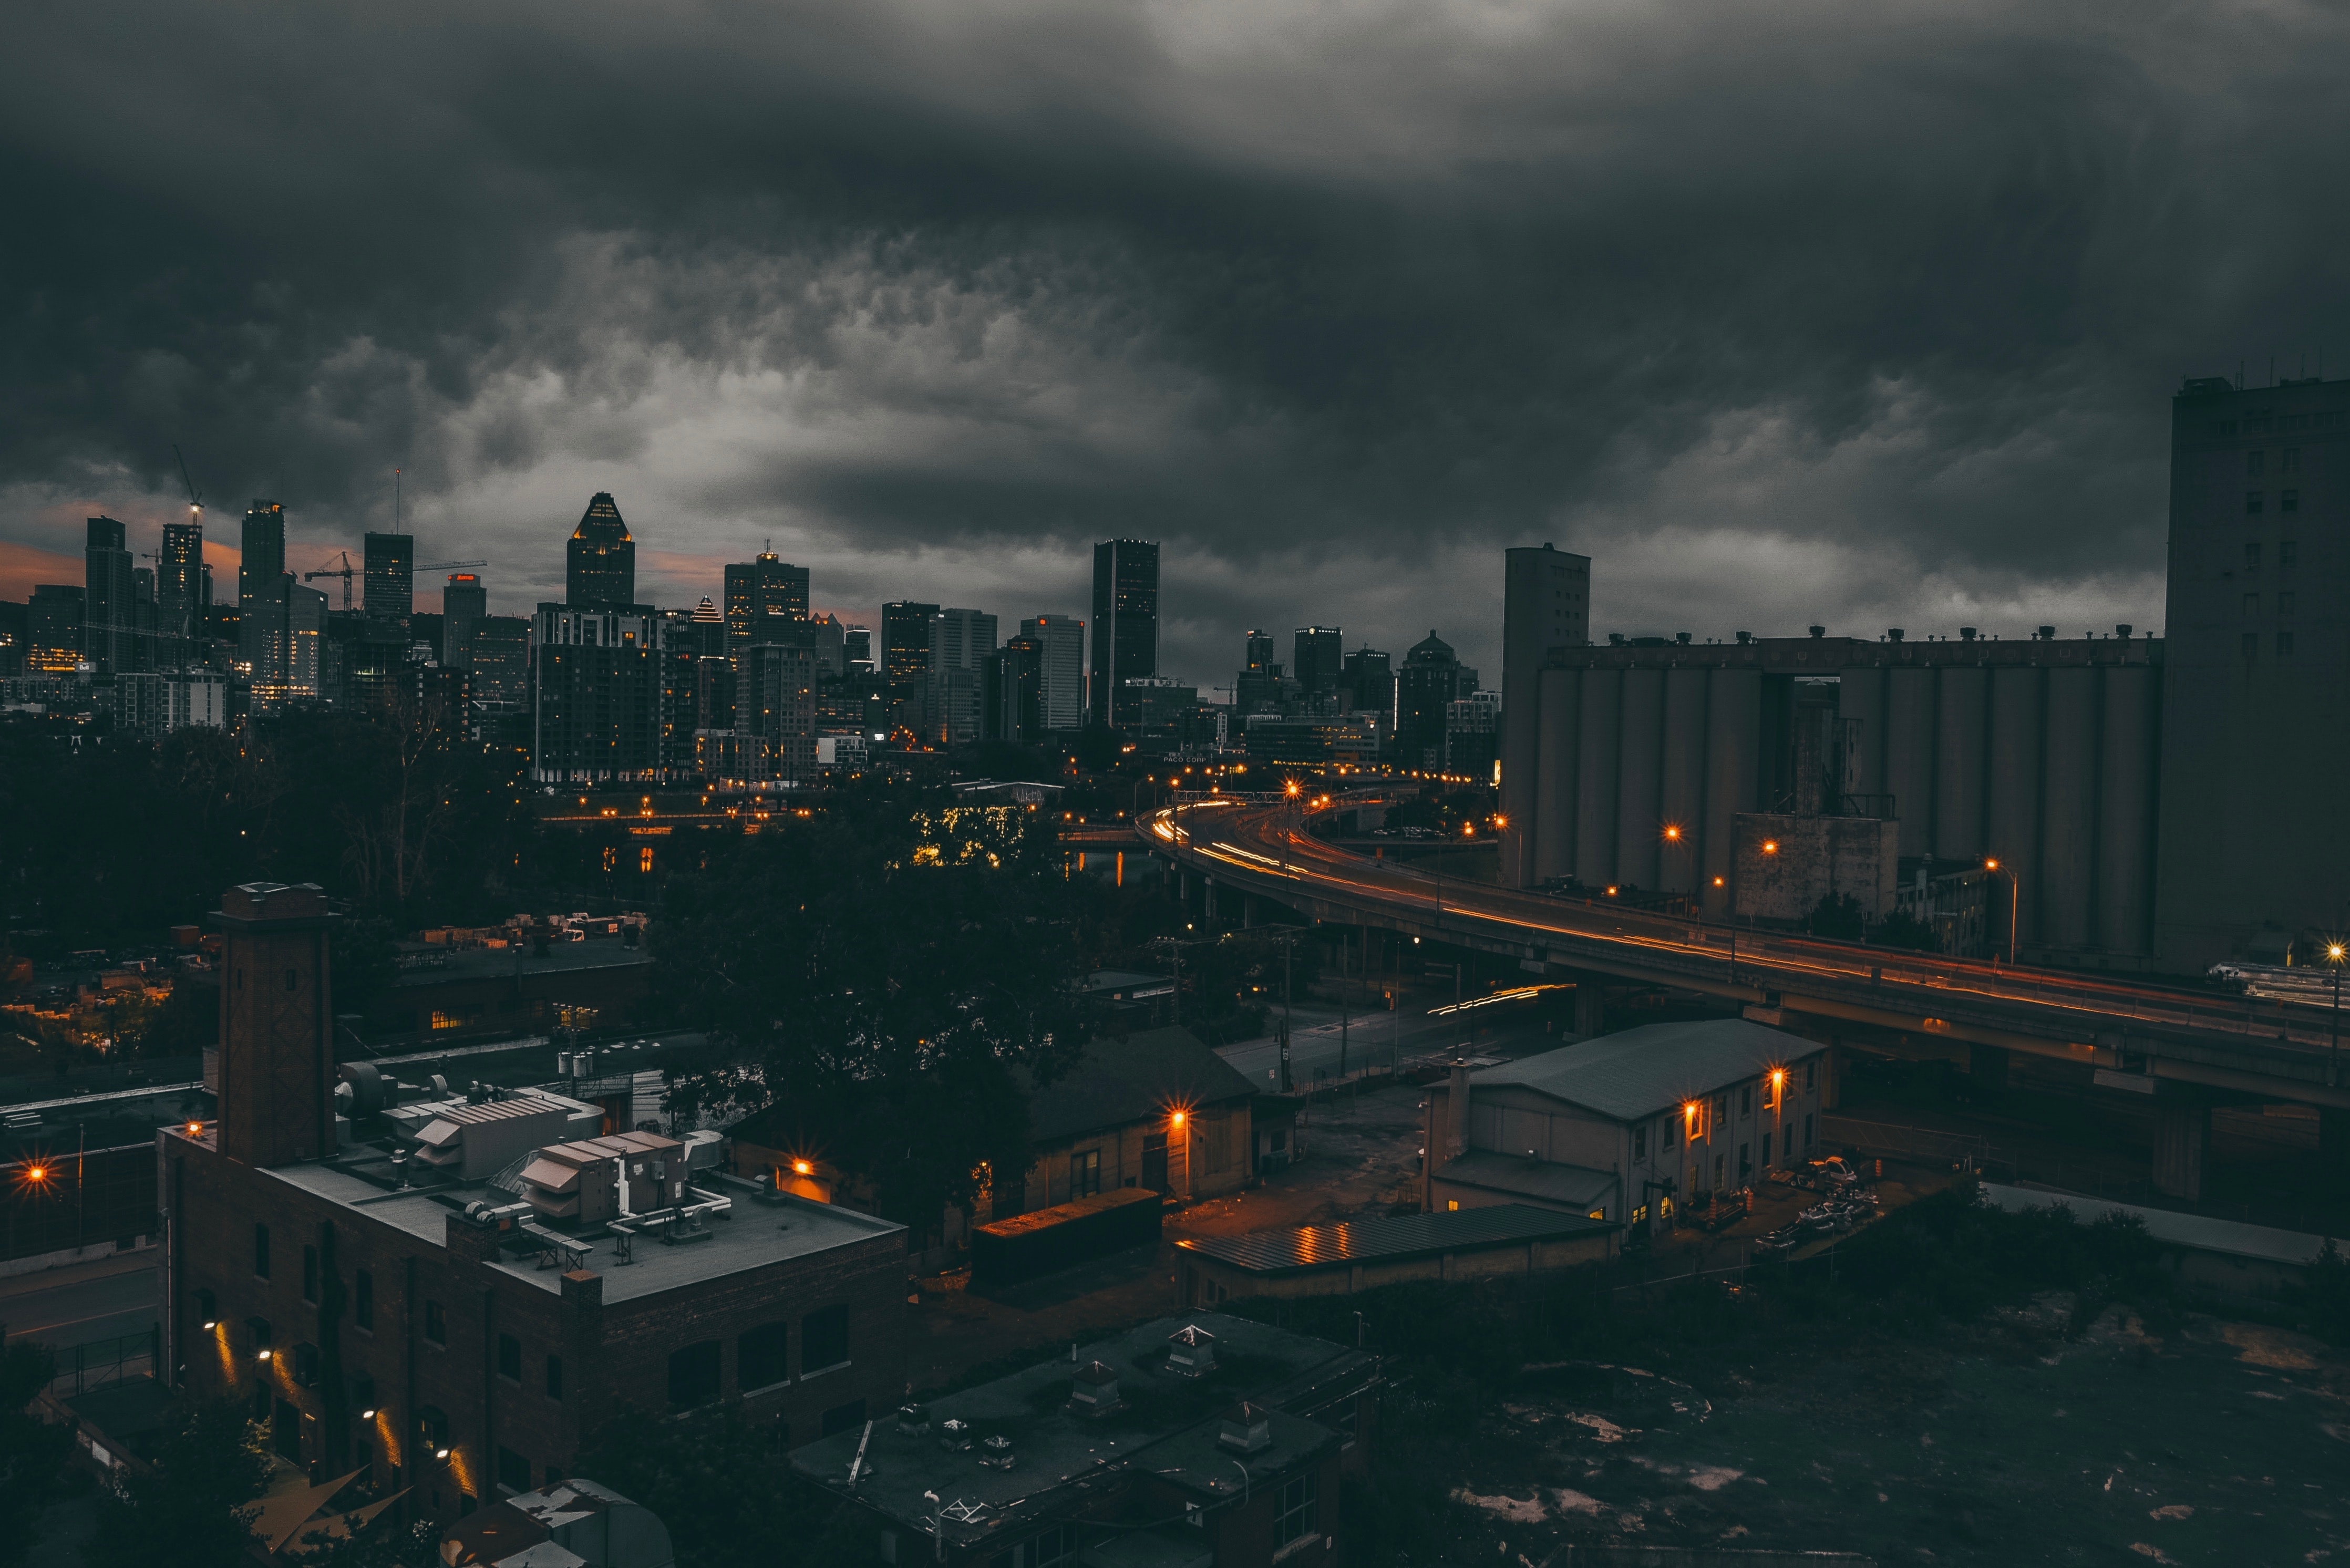 time-lapse photography of city under black cloudy sky